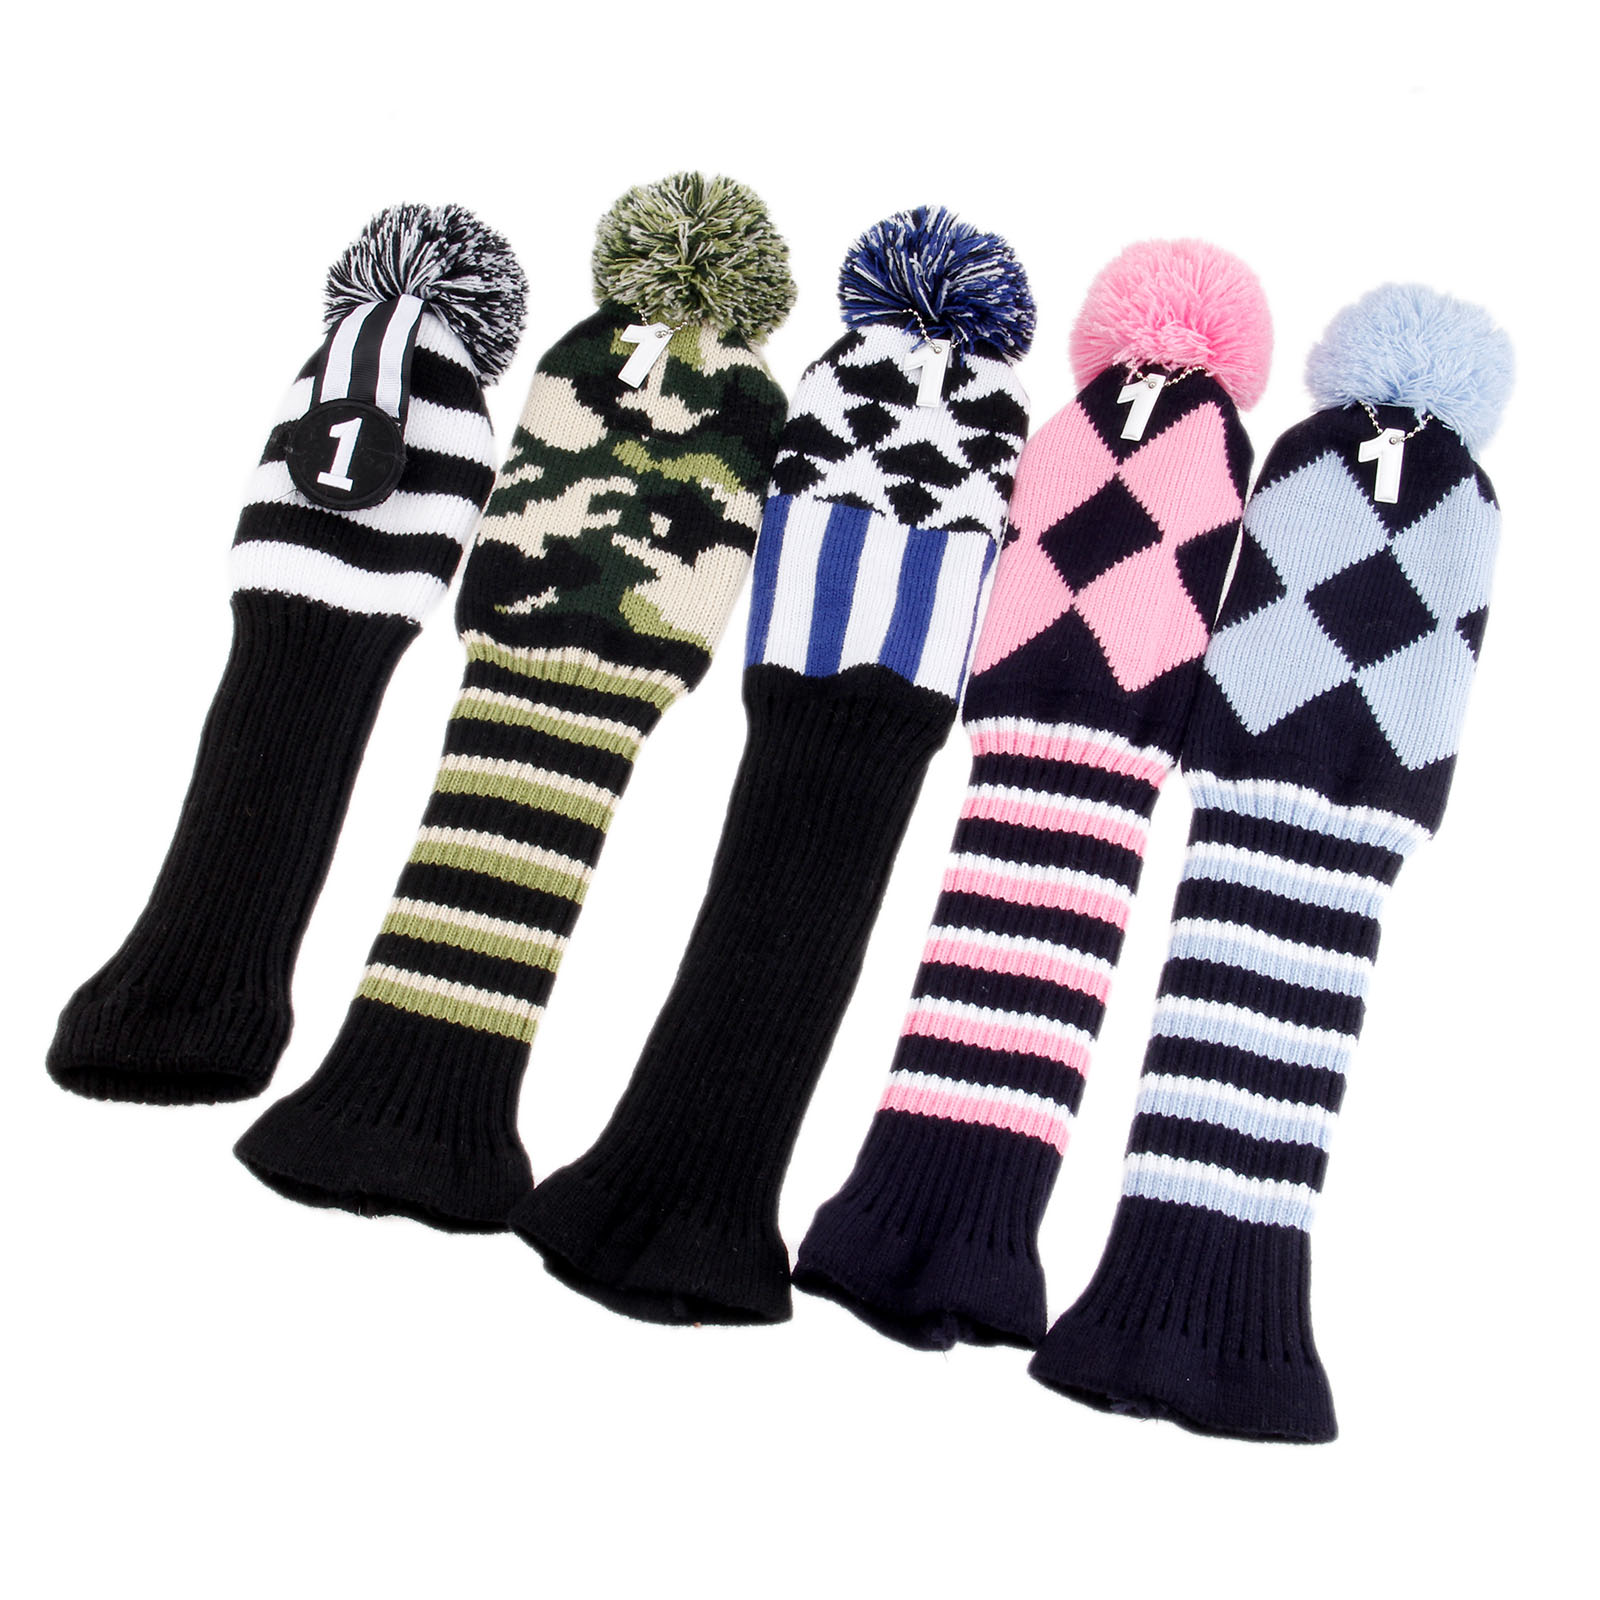 3 Pcs Set Pom Pom Golf Hybrid Club Head Covers Soft Wool Knitted